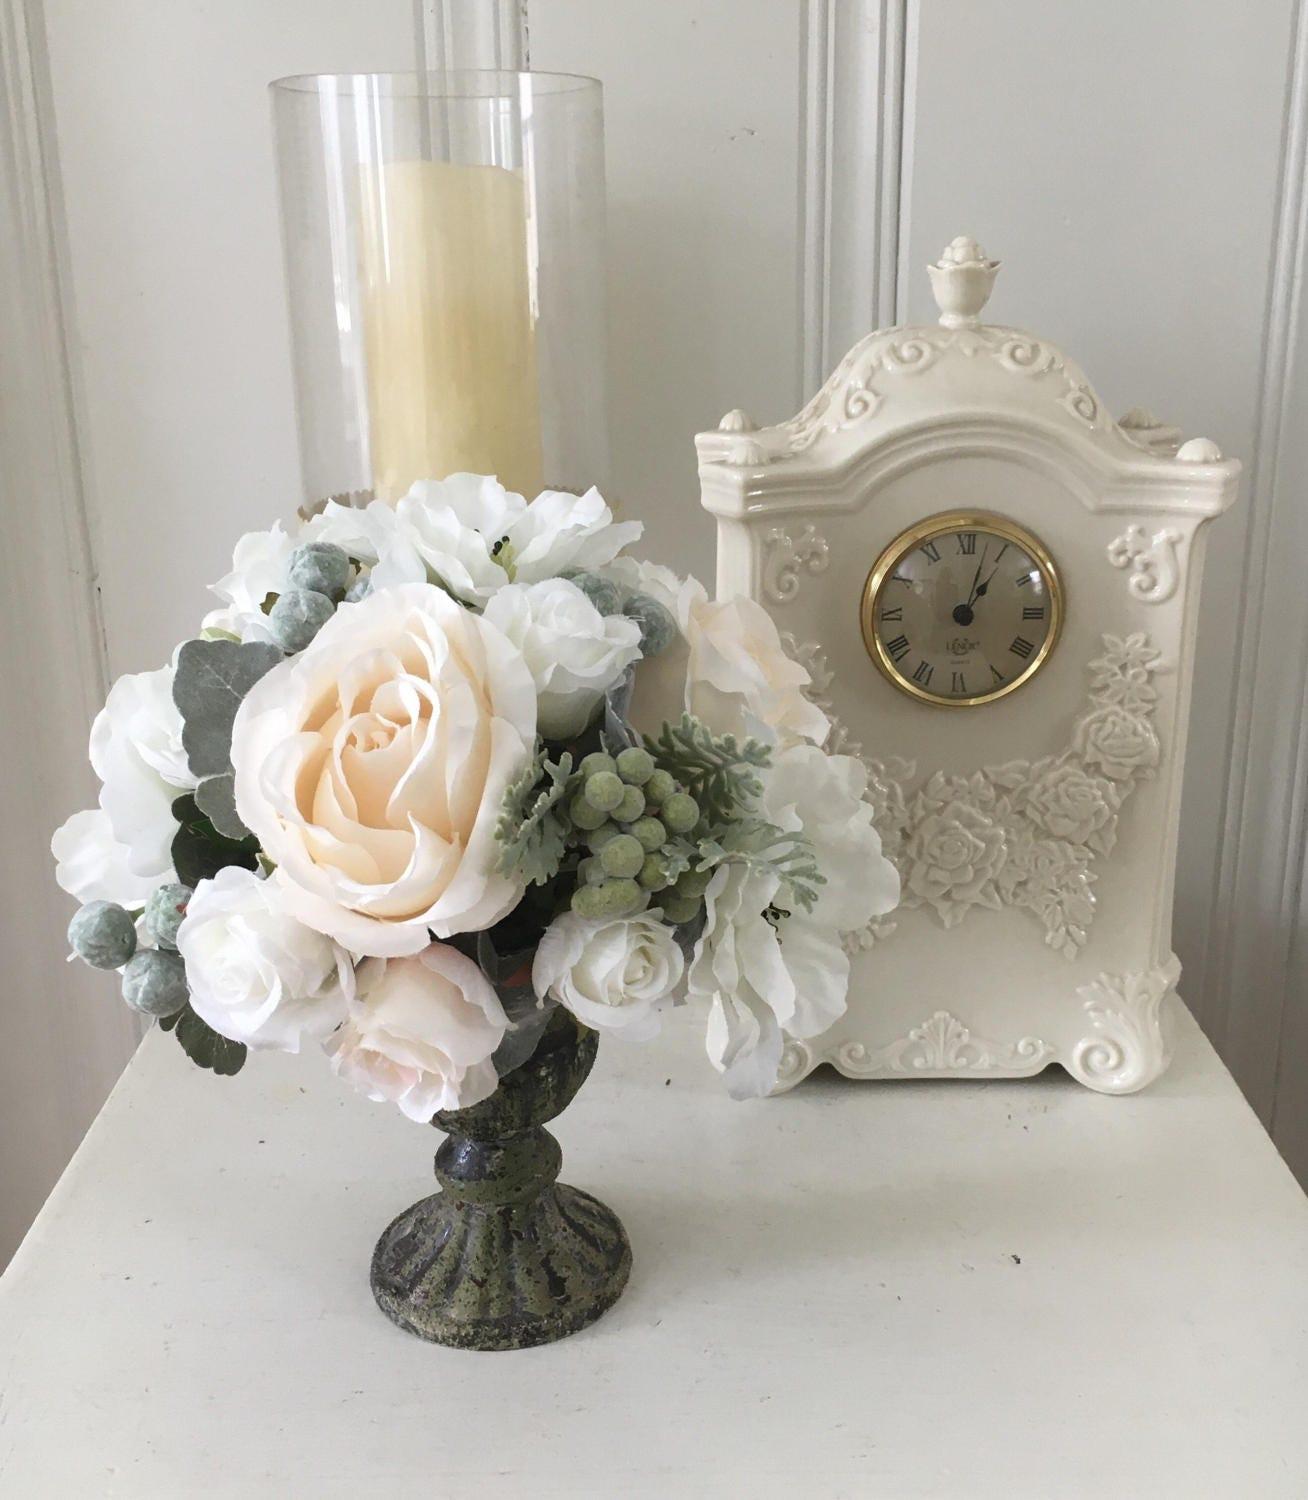 Shabby Chic Decor: Floral Home Decor Shabby Chic Flowers Cottage Chic Decor